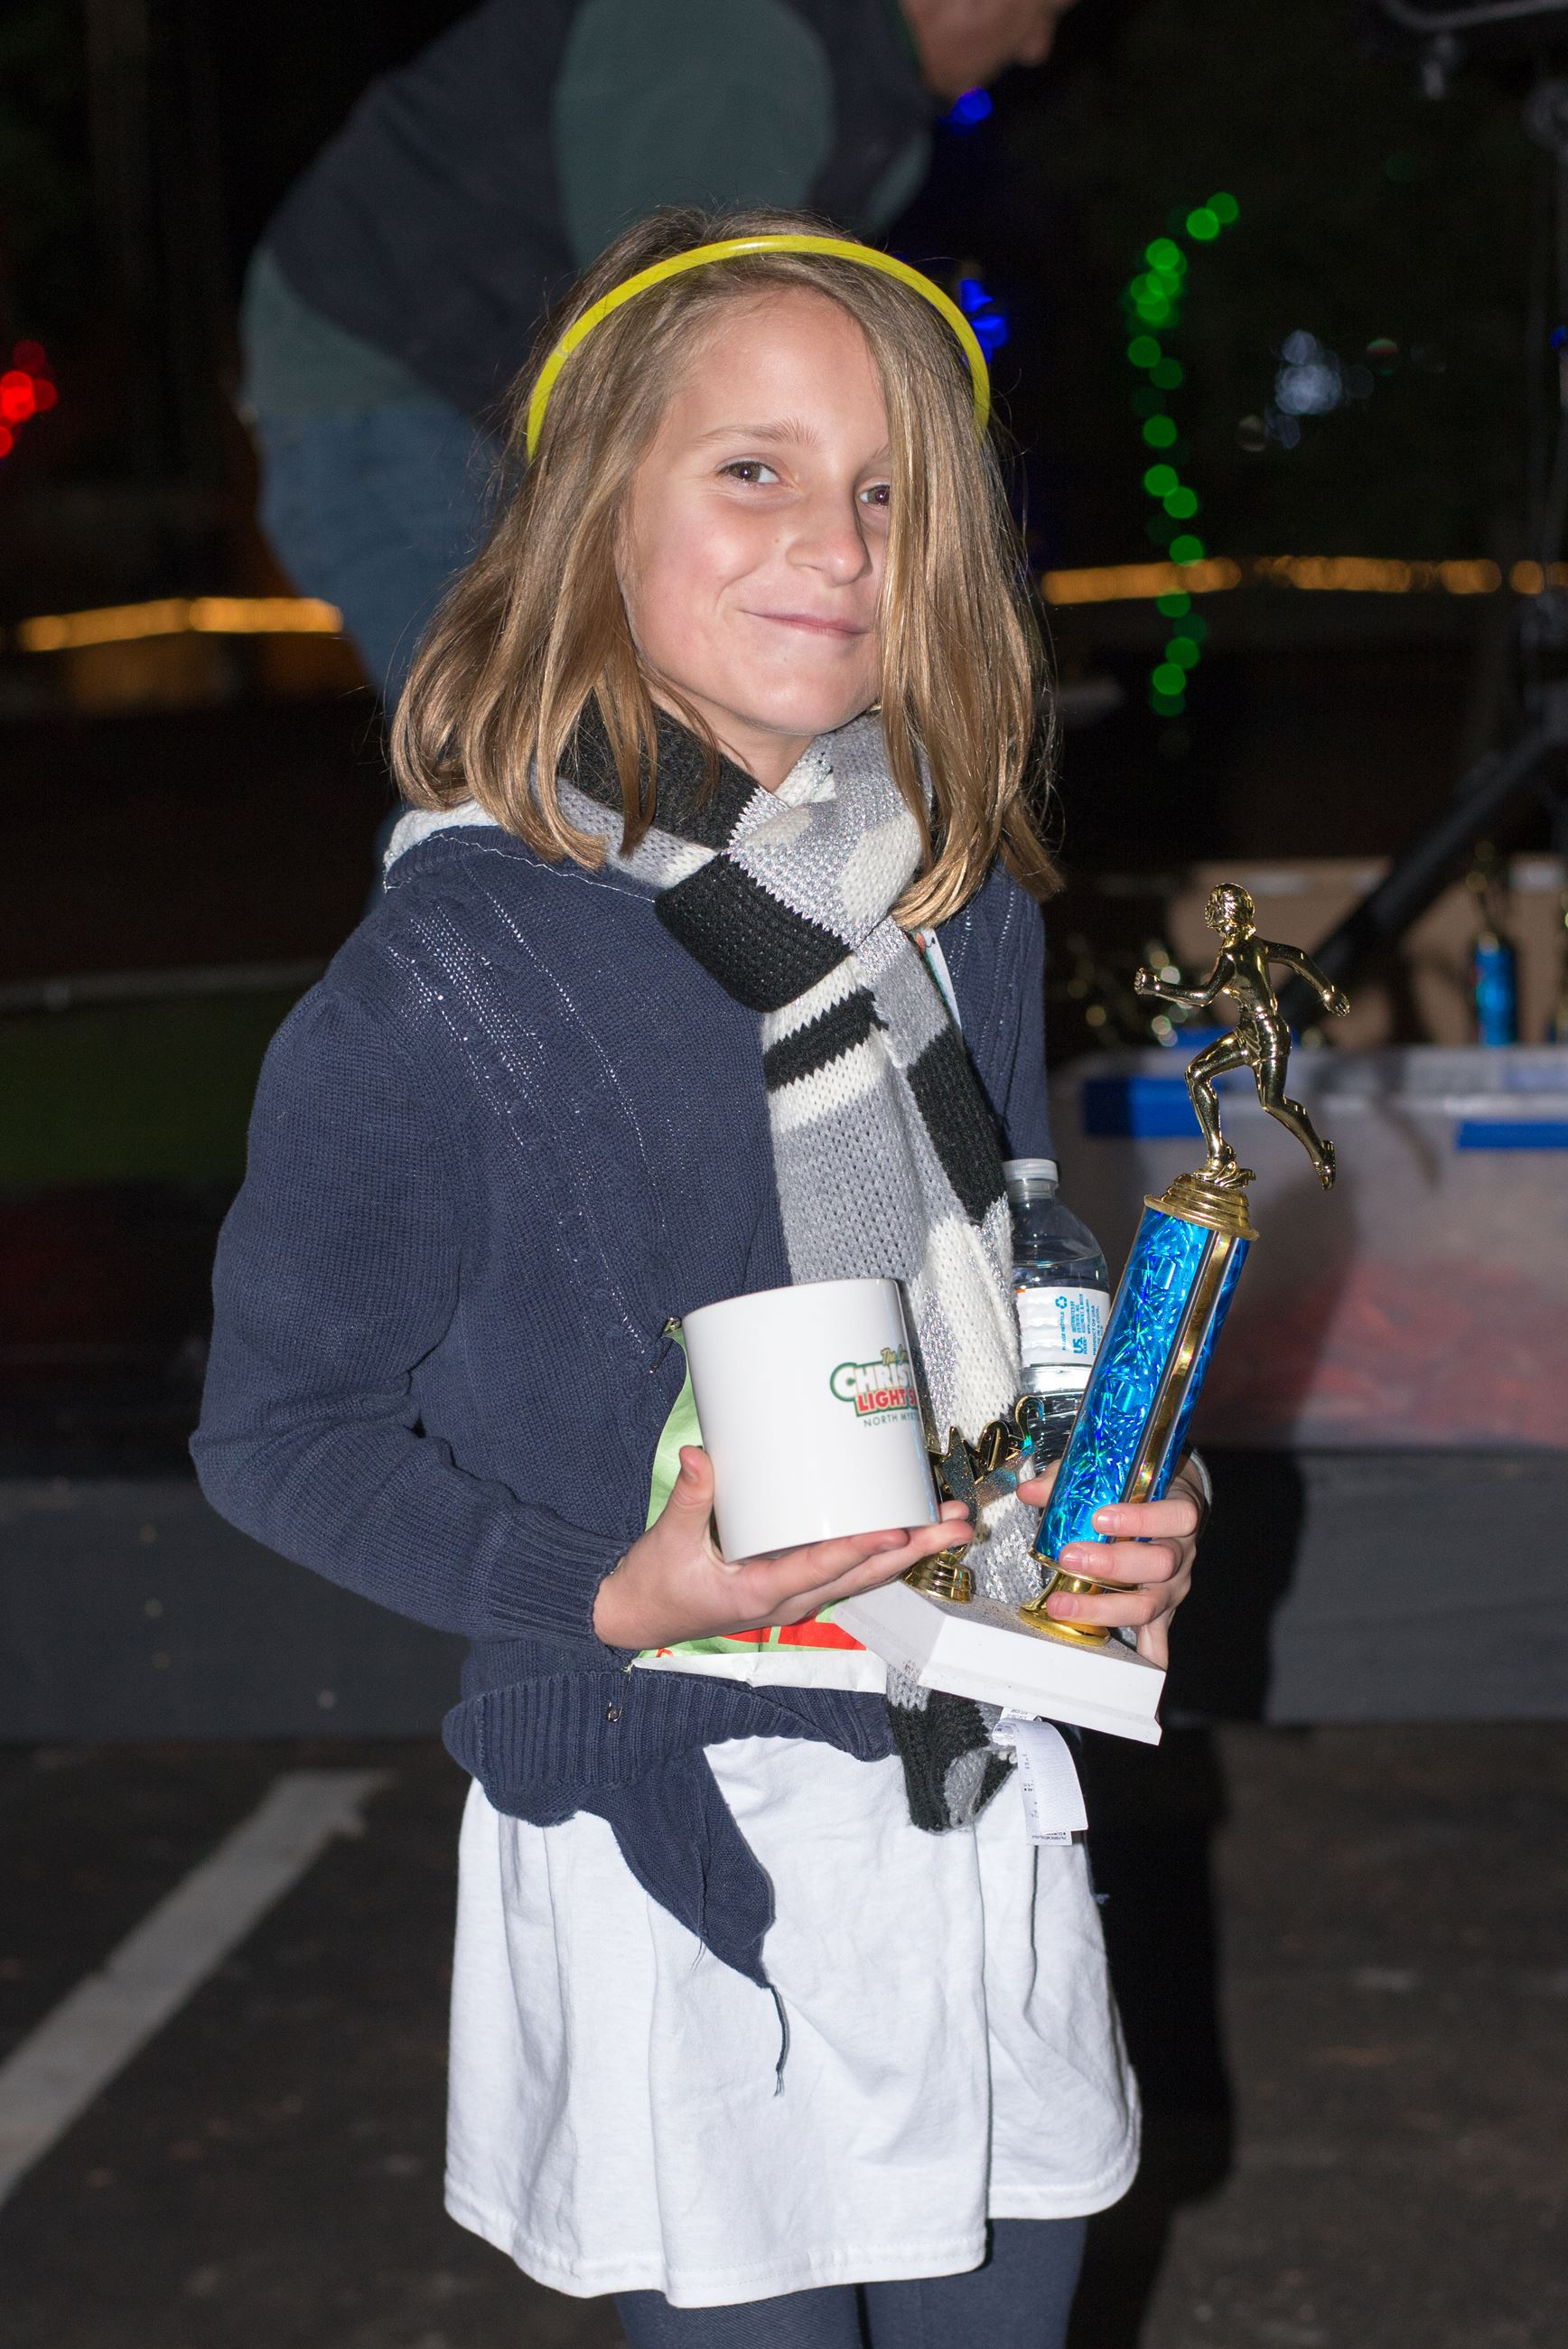 Child Holding a Mug and Trophy with a Glow Headband